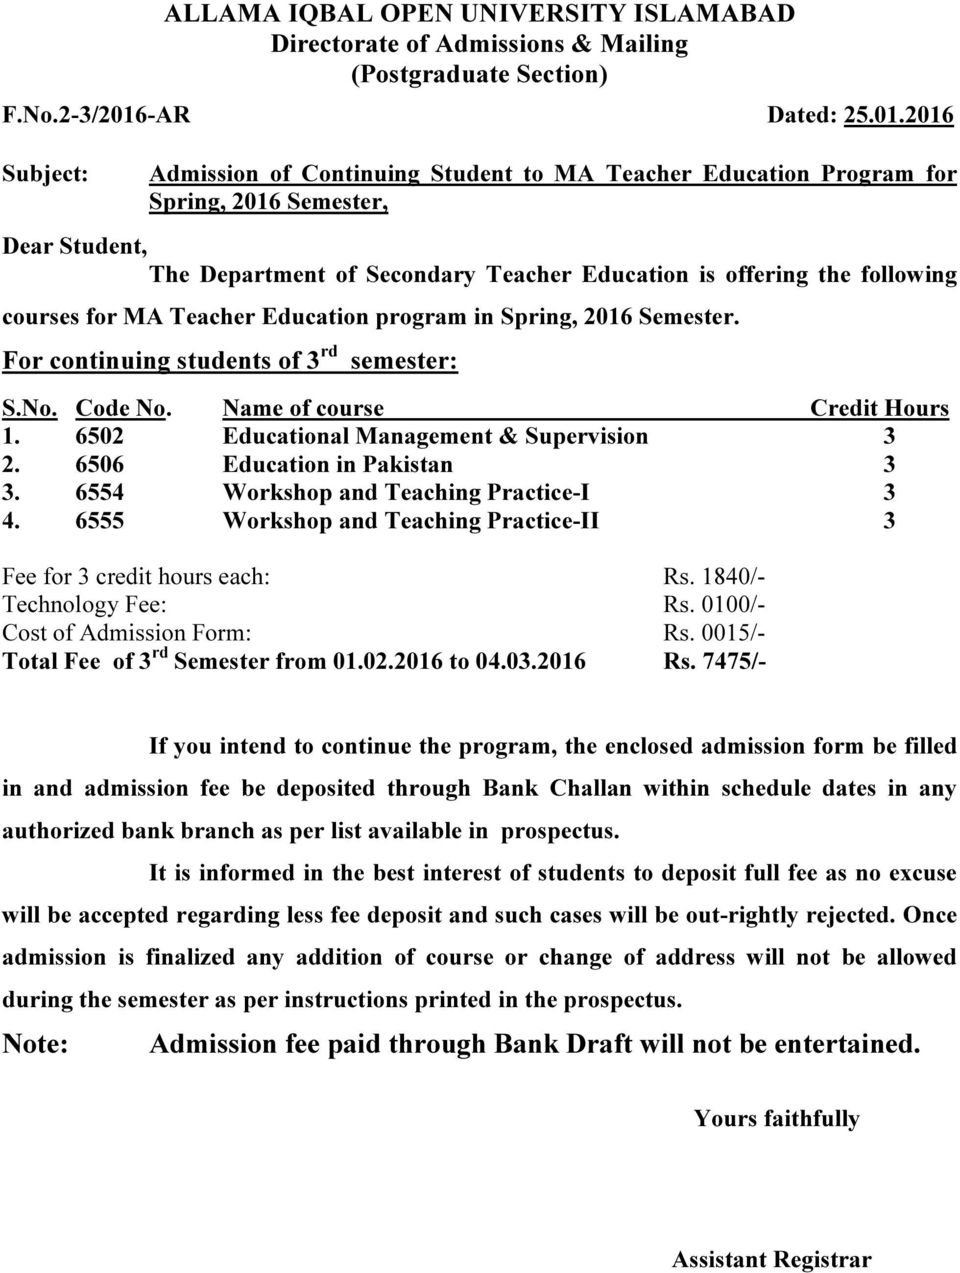 2016 Subject: Admission of Continuing Student to MA Teacher Education Program for Spring, 2016 Semester, The Department of Secondary Teacher Education is offering